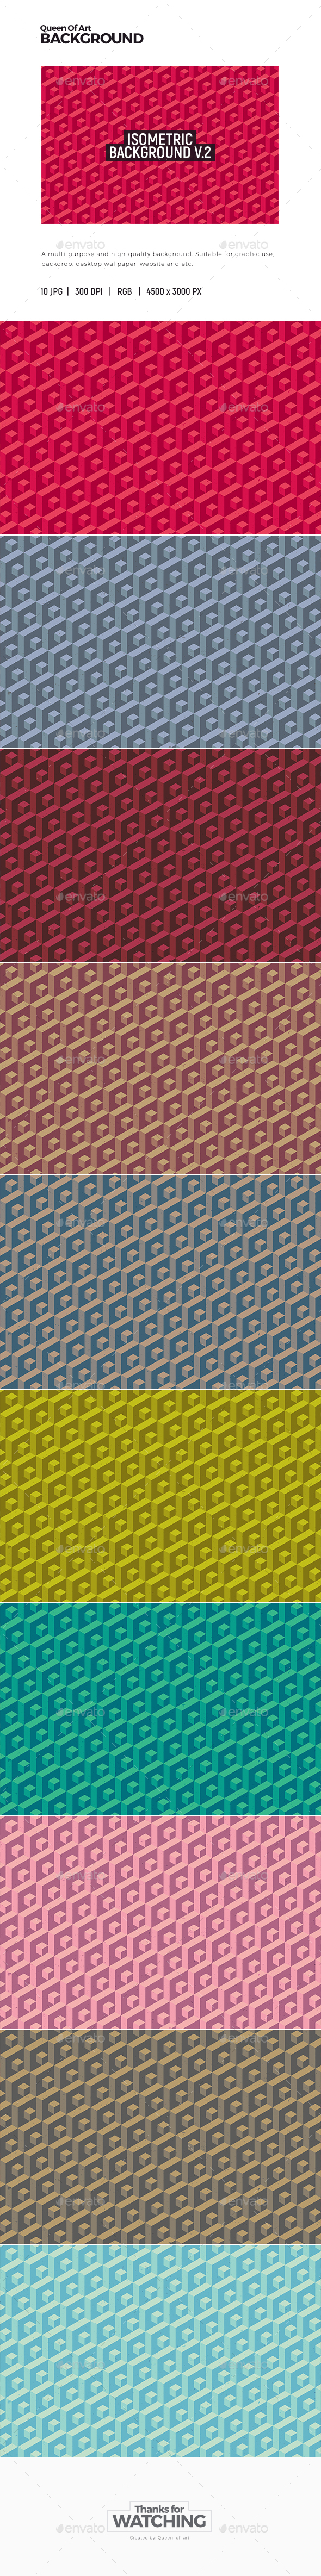 Isometric Background 2 - Patterns Backgrounds